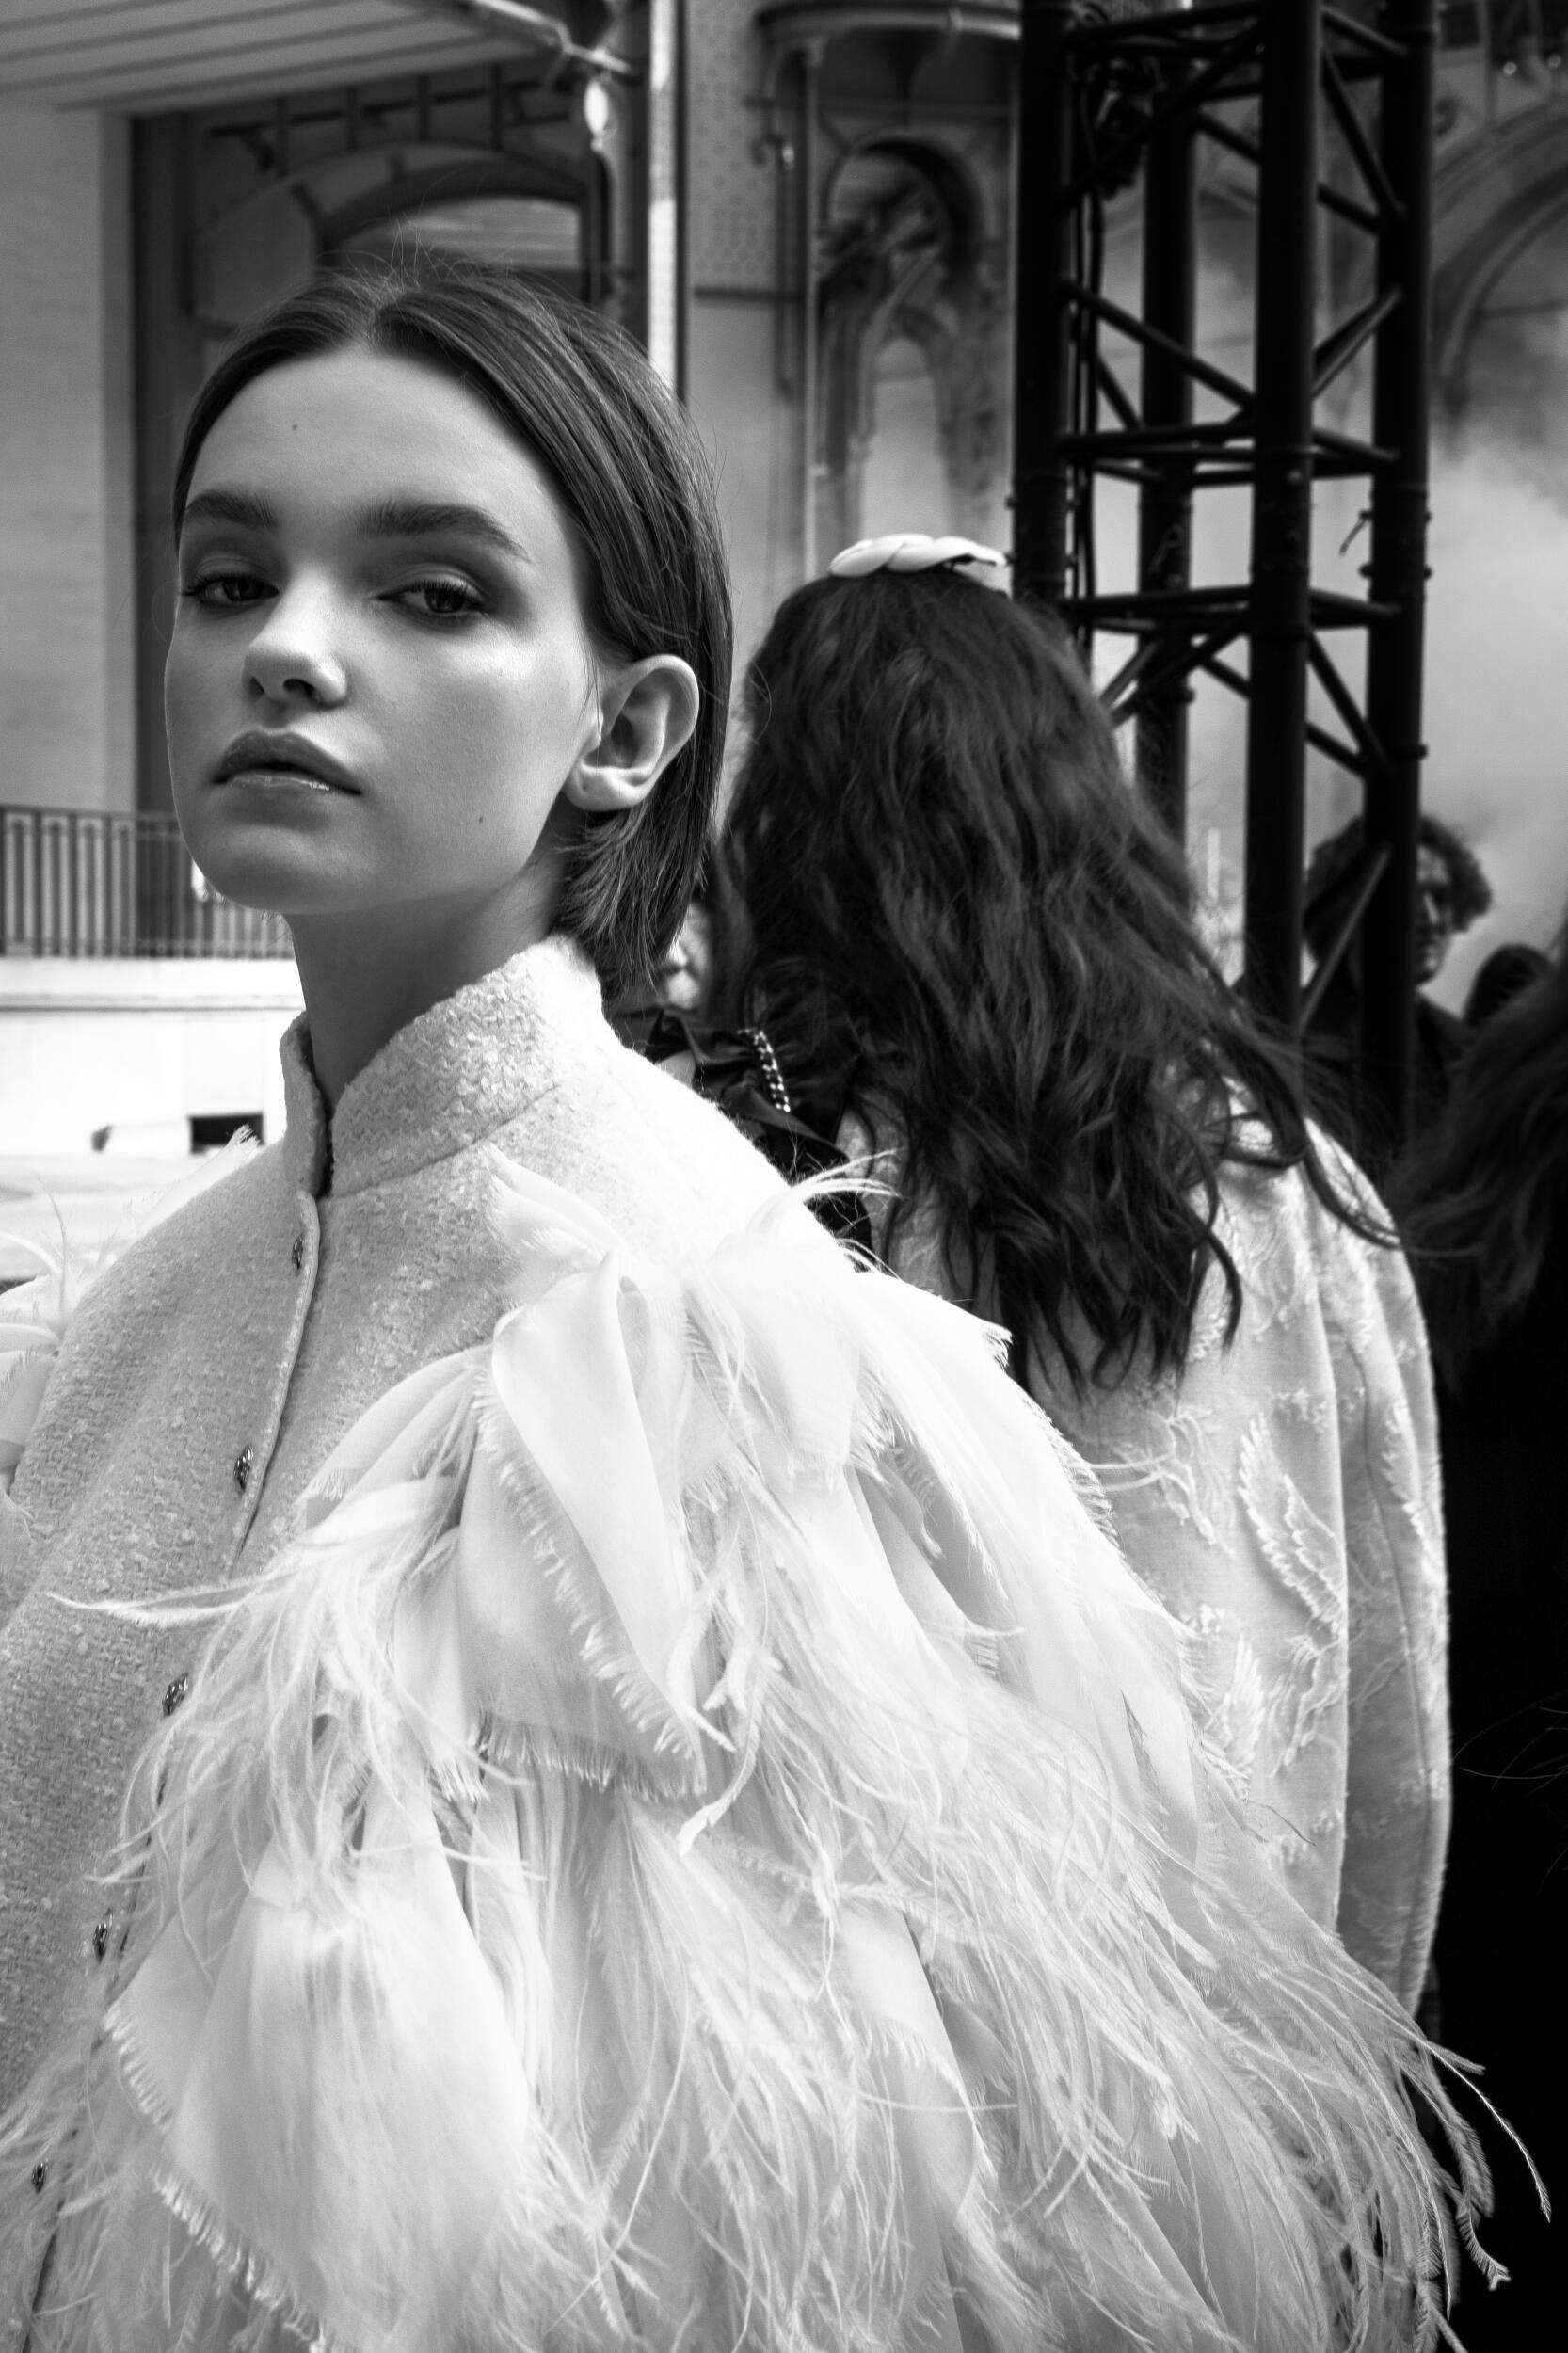 Model Womenswear Style Backstage Chanel